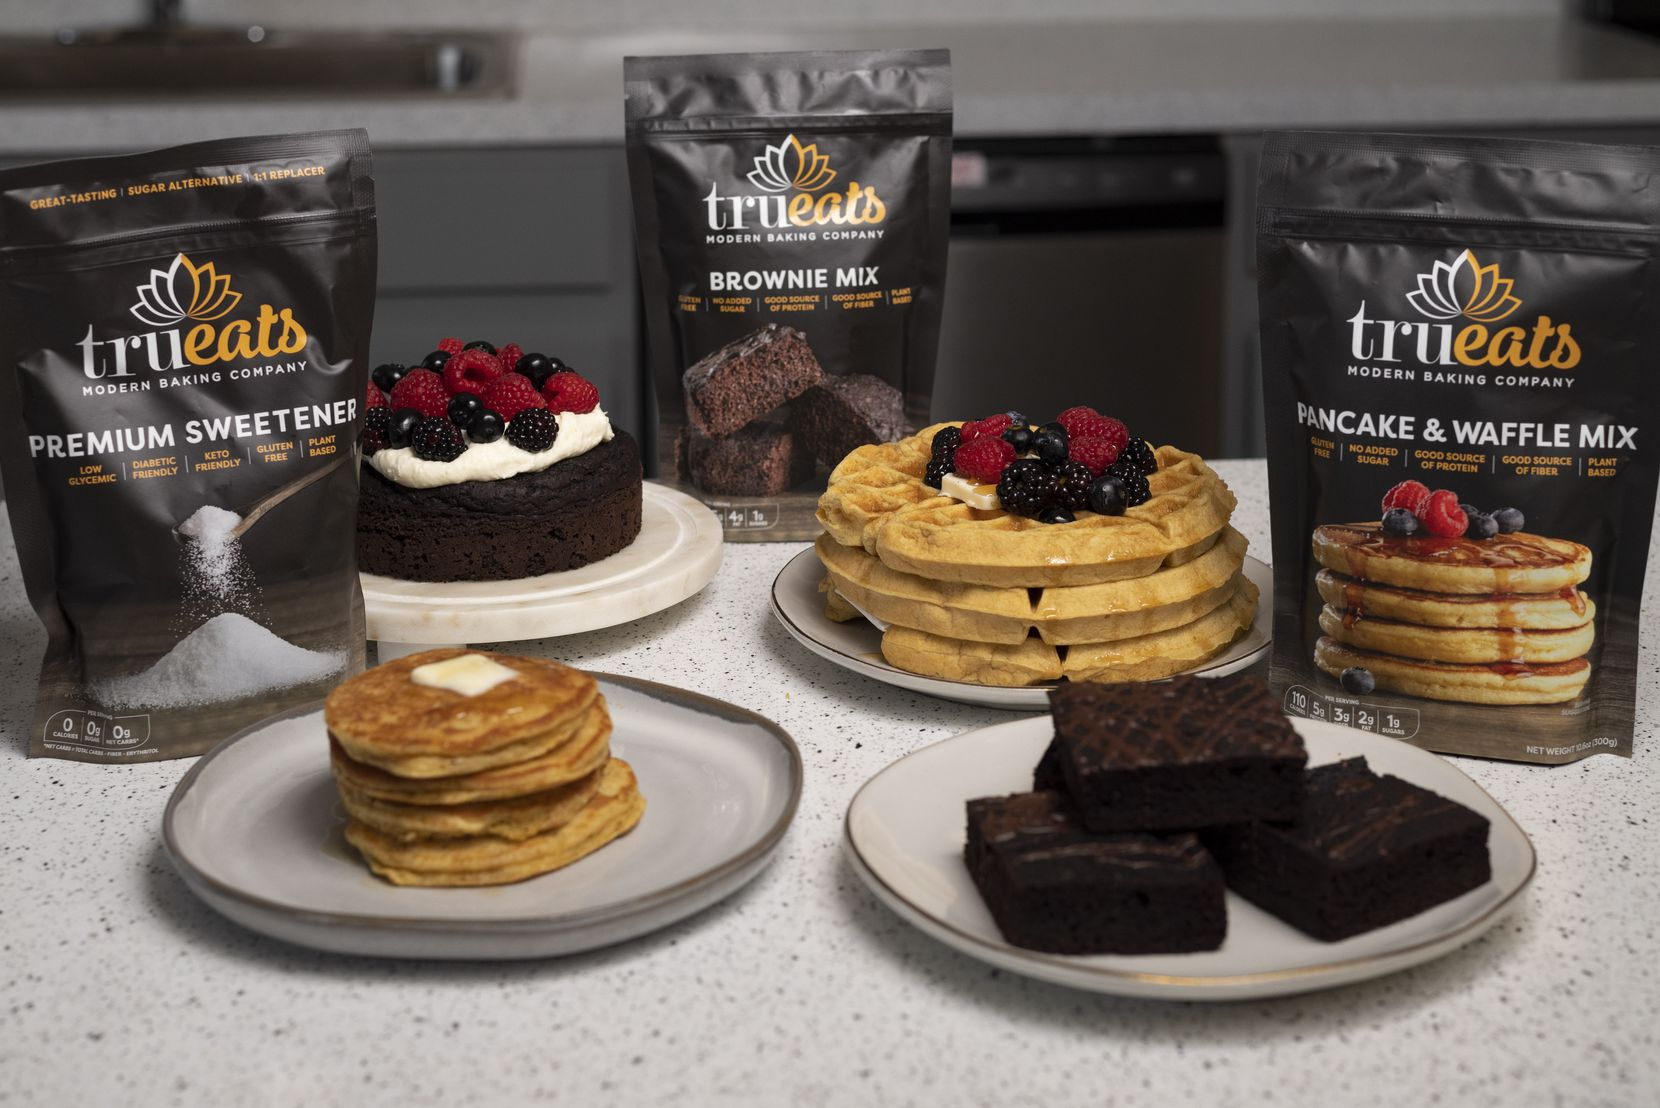 A premium sweetener, left, brownie mix and pancake and waffle mix; from TruEats Modern Baking Company, inside a research and development lab at Culinary Focus in Grand Prairie